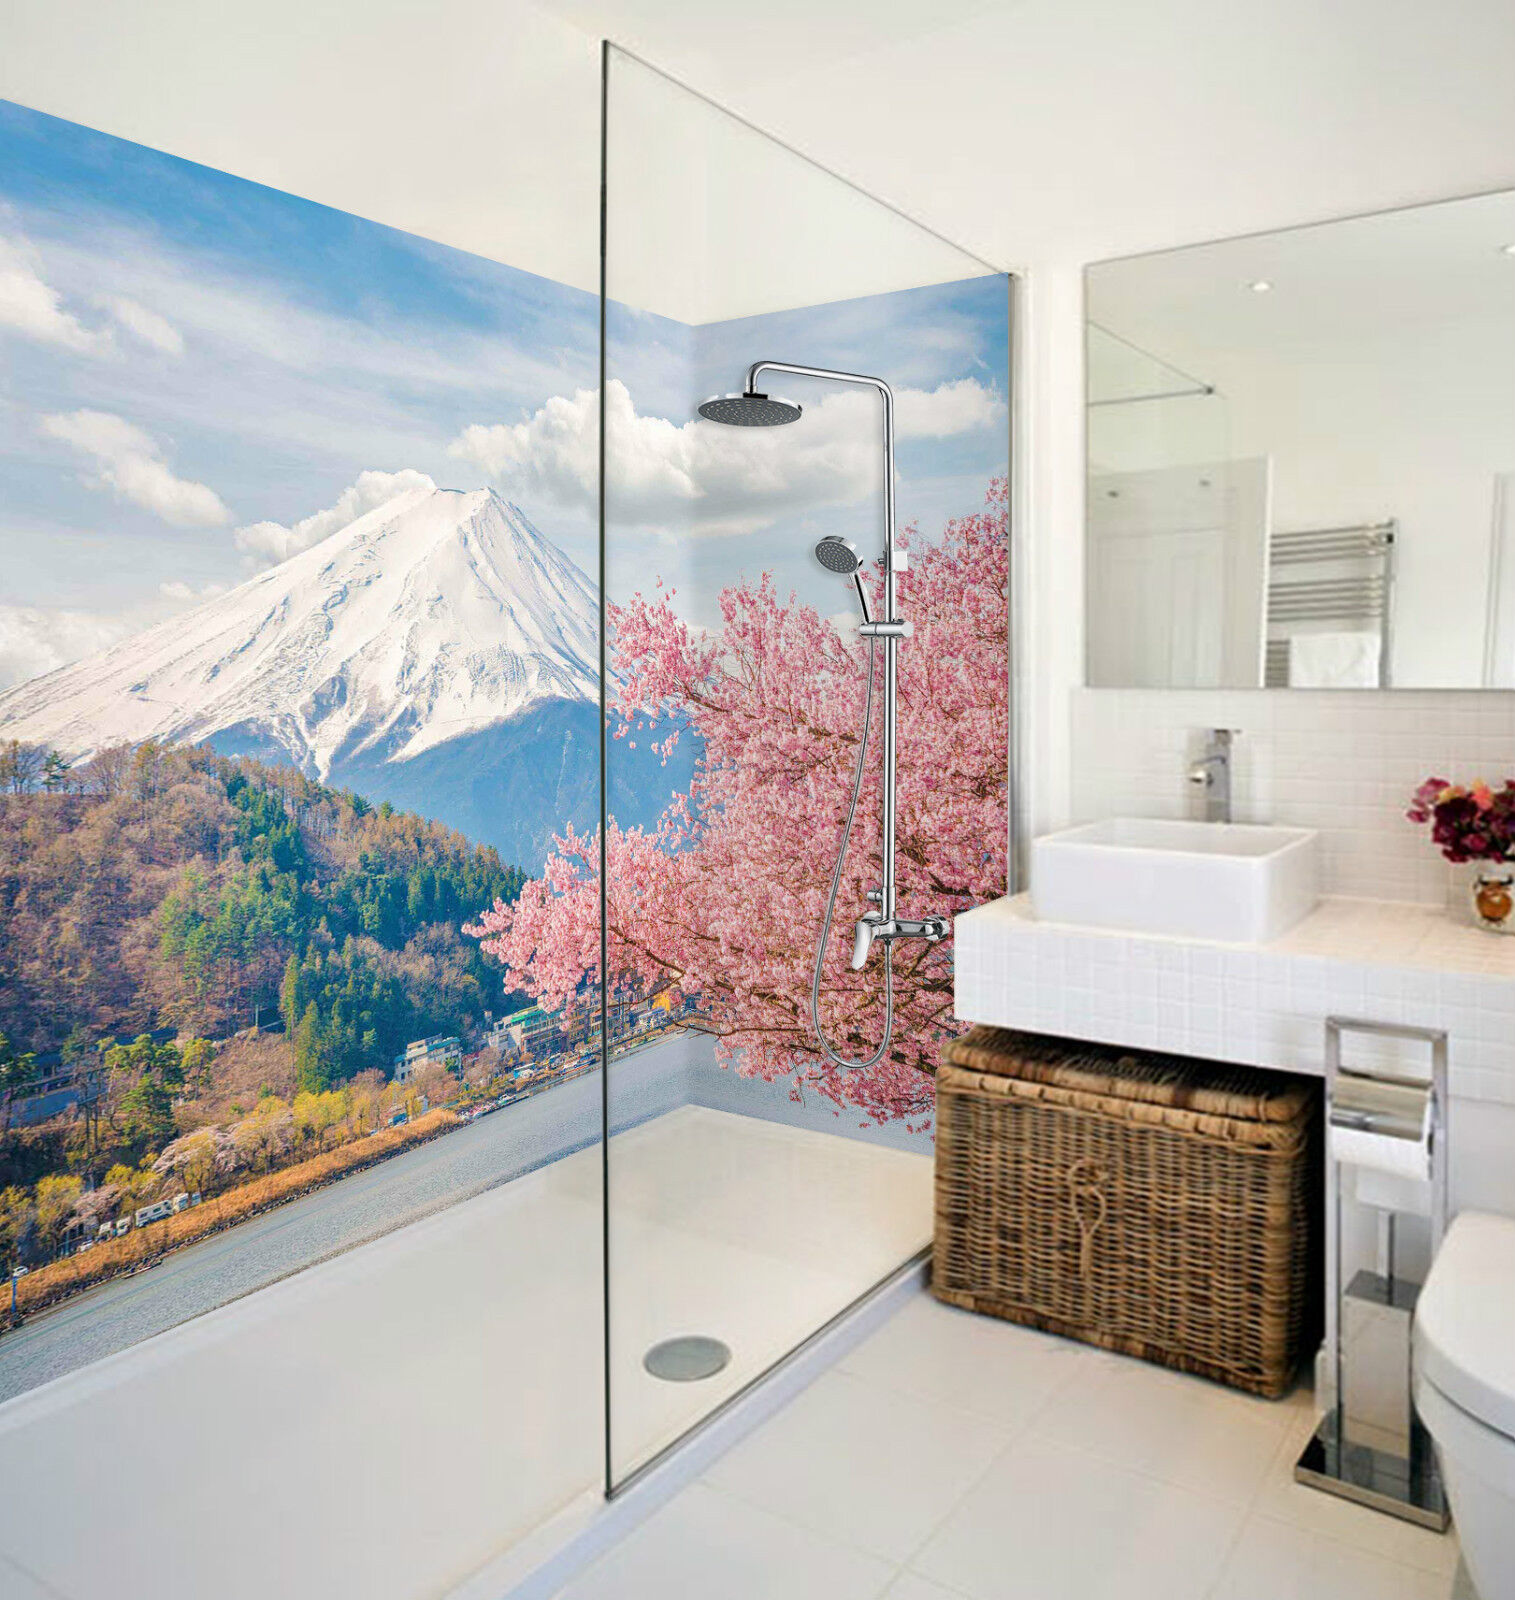 3D Mount Fuji Flowers 3 WallPaper Bathroom Print Decal Wall Deco AJ WALLPAPER CA